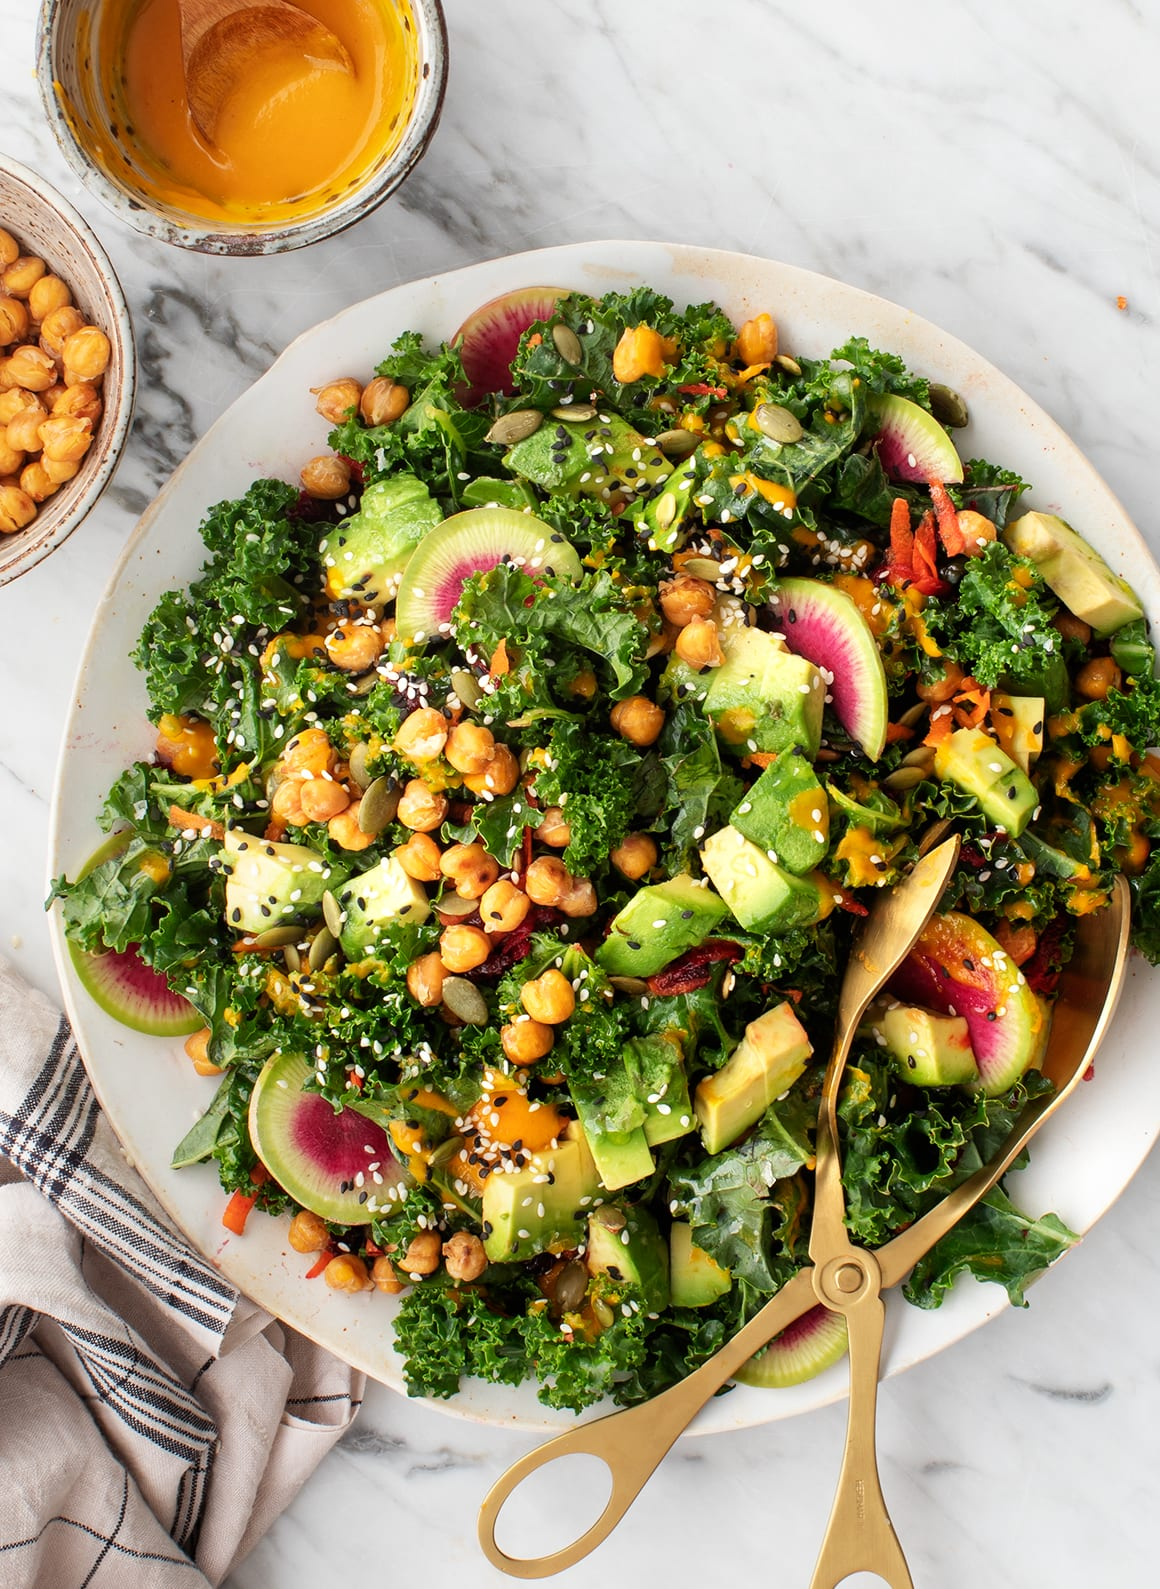 5. Rainbow Kale Salad with Carrot Ginger Dressing -